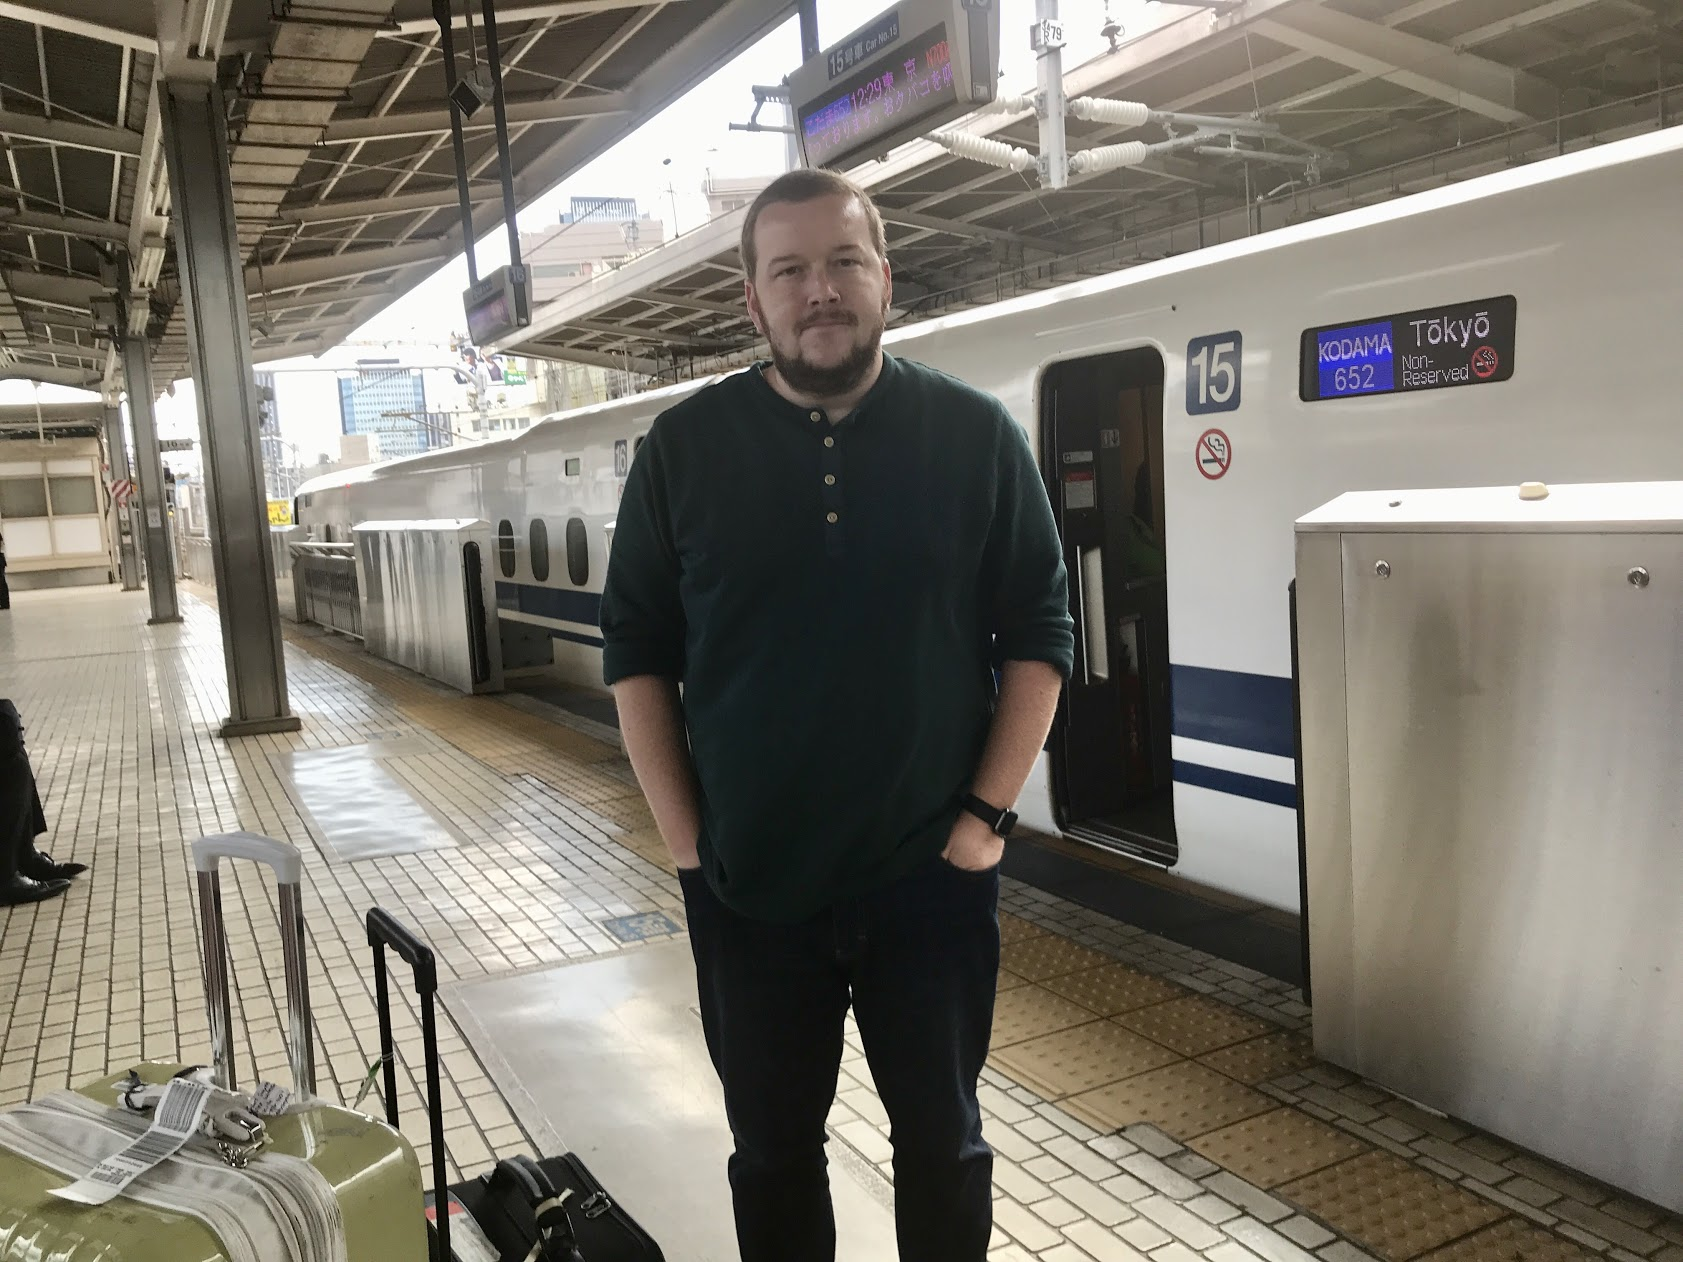 Riding the Japanese bullet train, the Shinkansen! Reaches speeds of 200 mph. Our vision is to see the unreached hear about Jesus for the first time. These trains sure make it easier.